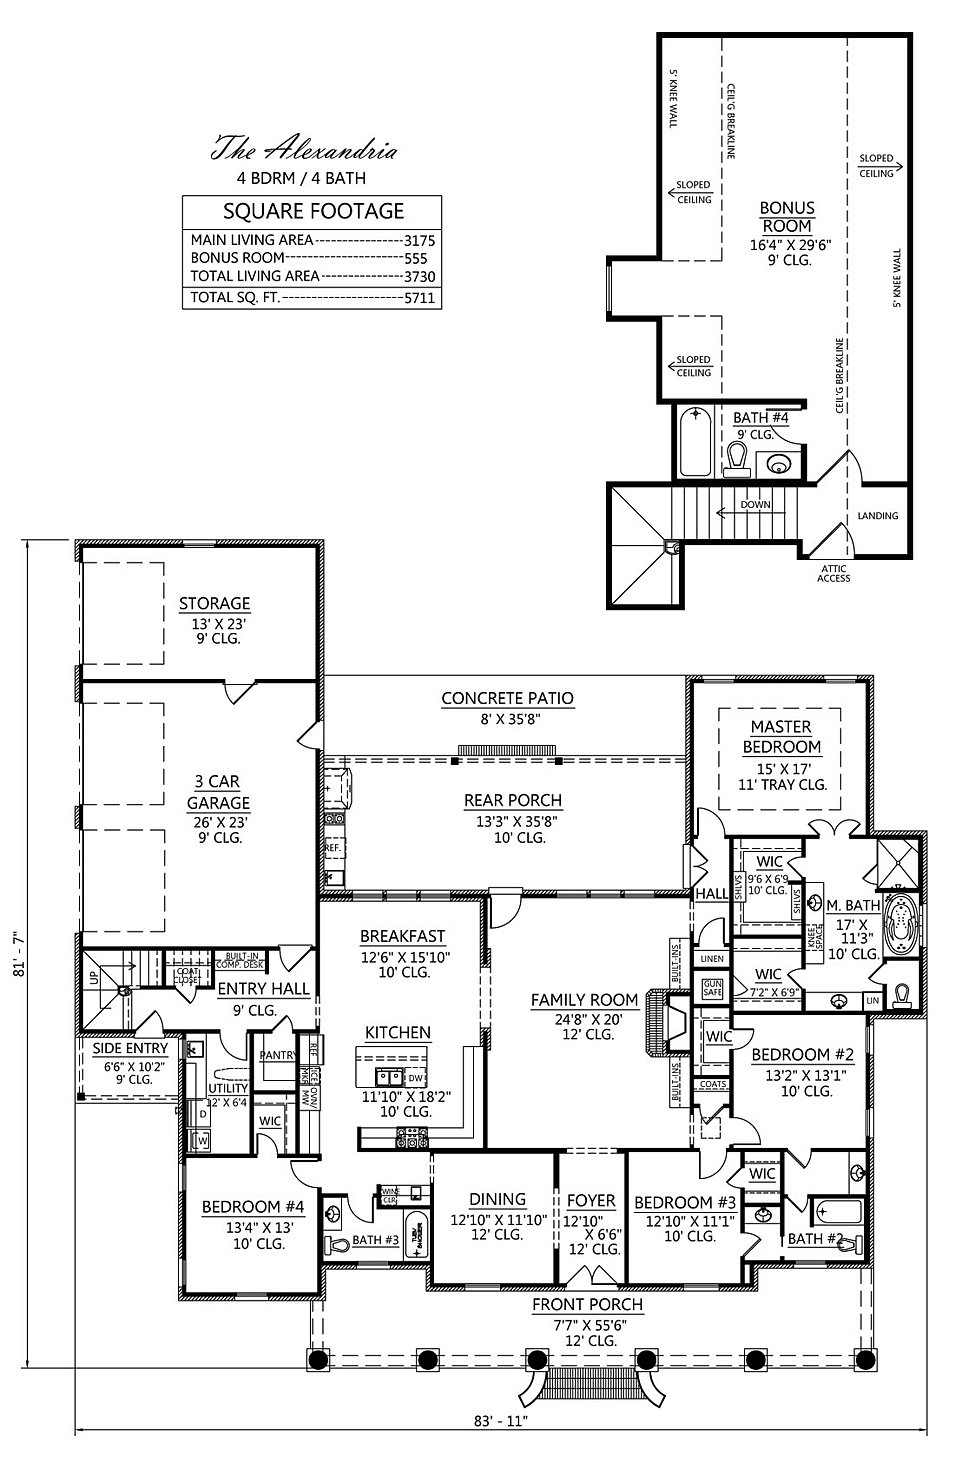 madden home design - the alexandria